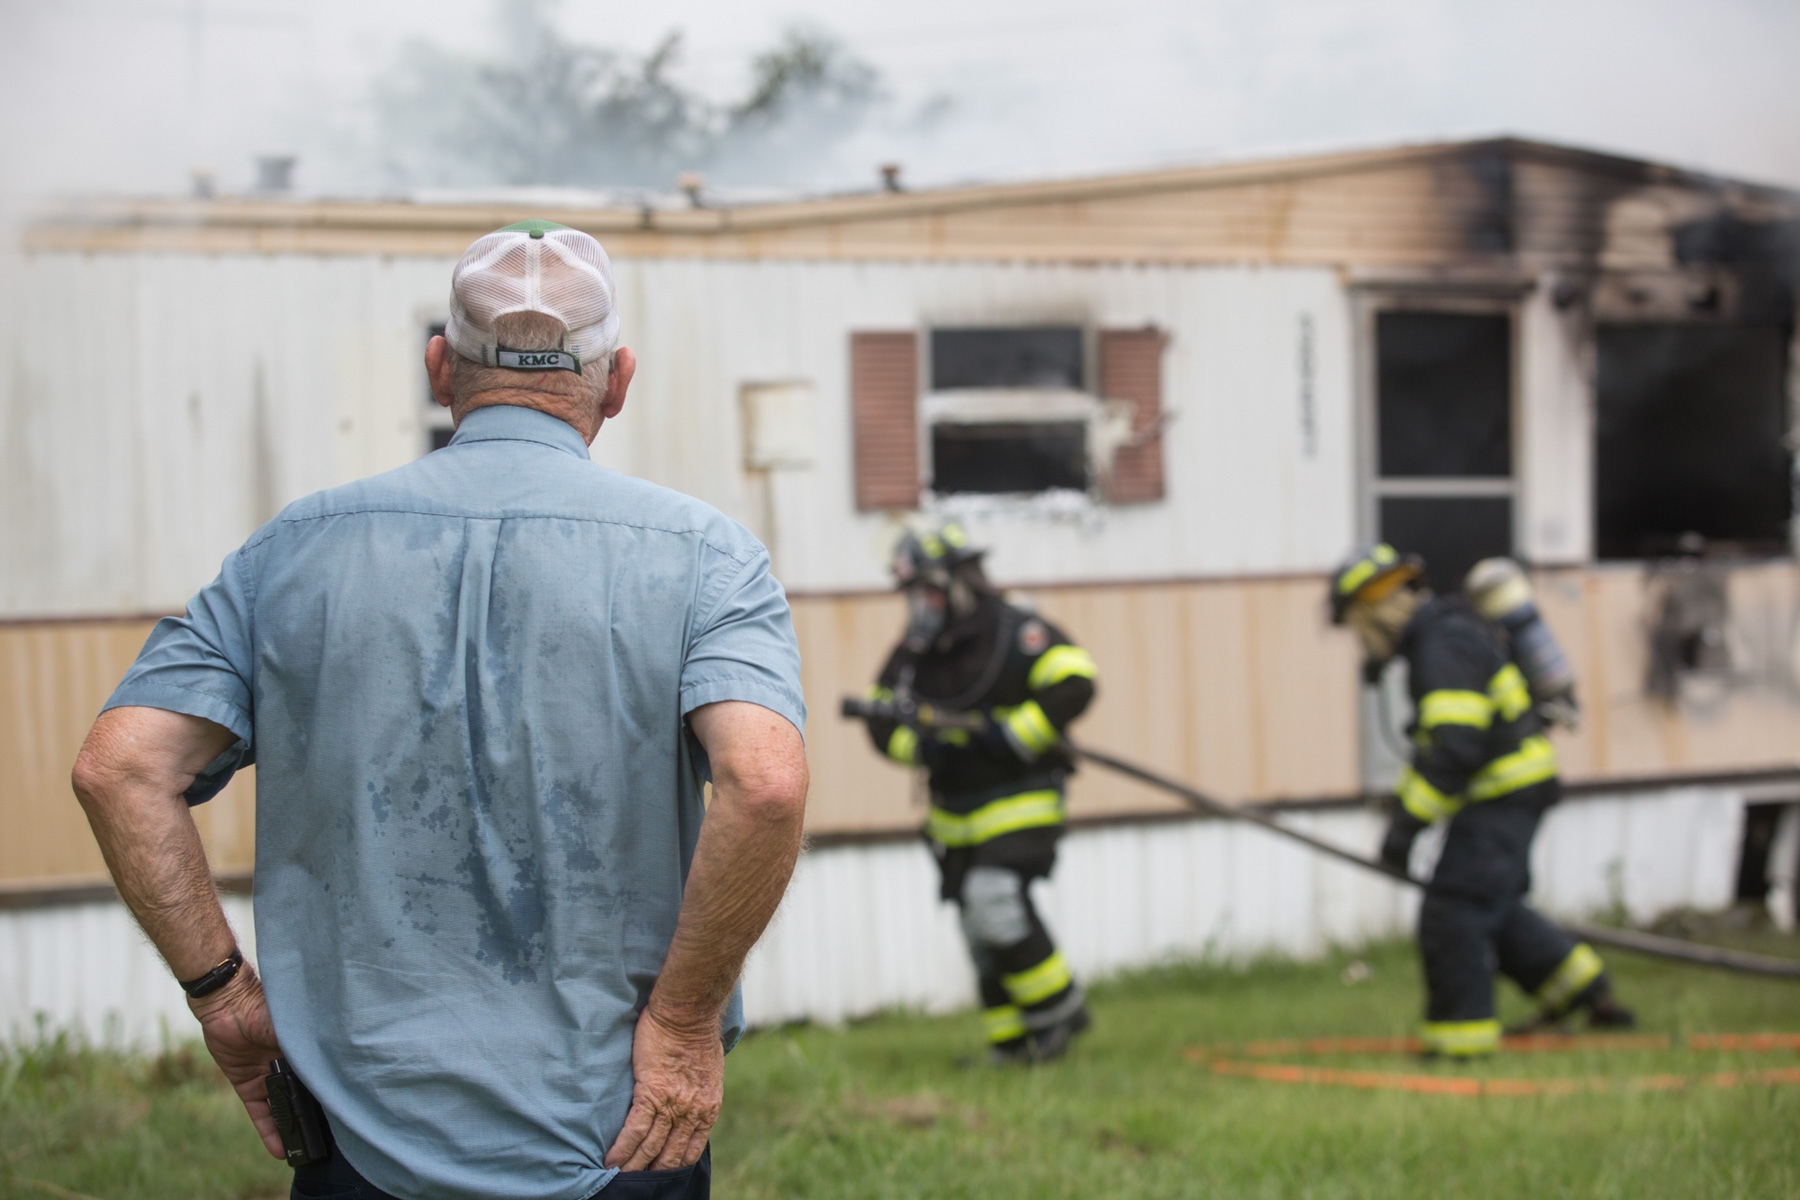 Third Place | Spot NewsJoe Pellegrino, The Daily ReflectorAn onlooker watches as firefighters respond to a fire at 3973 Lloyd Corey Road on Wednesday.